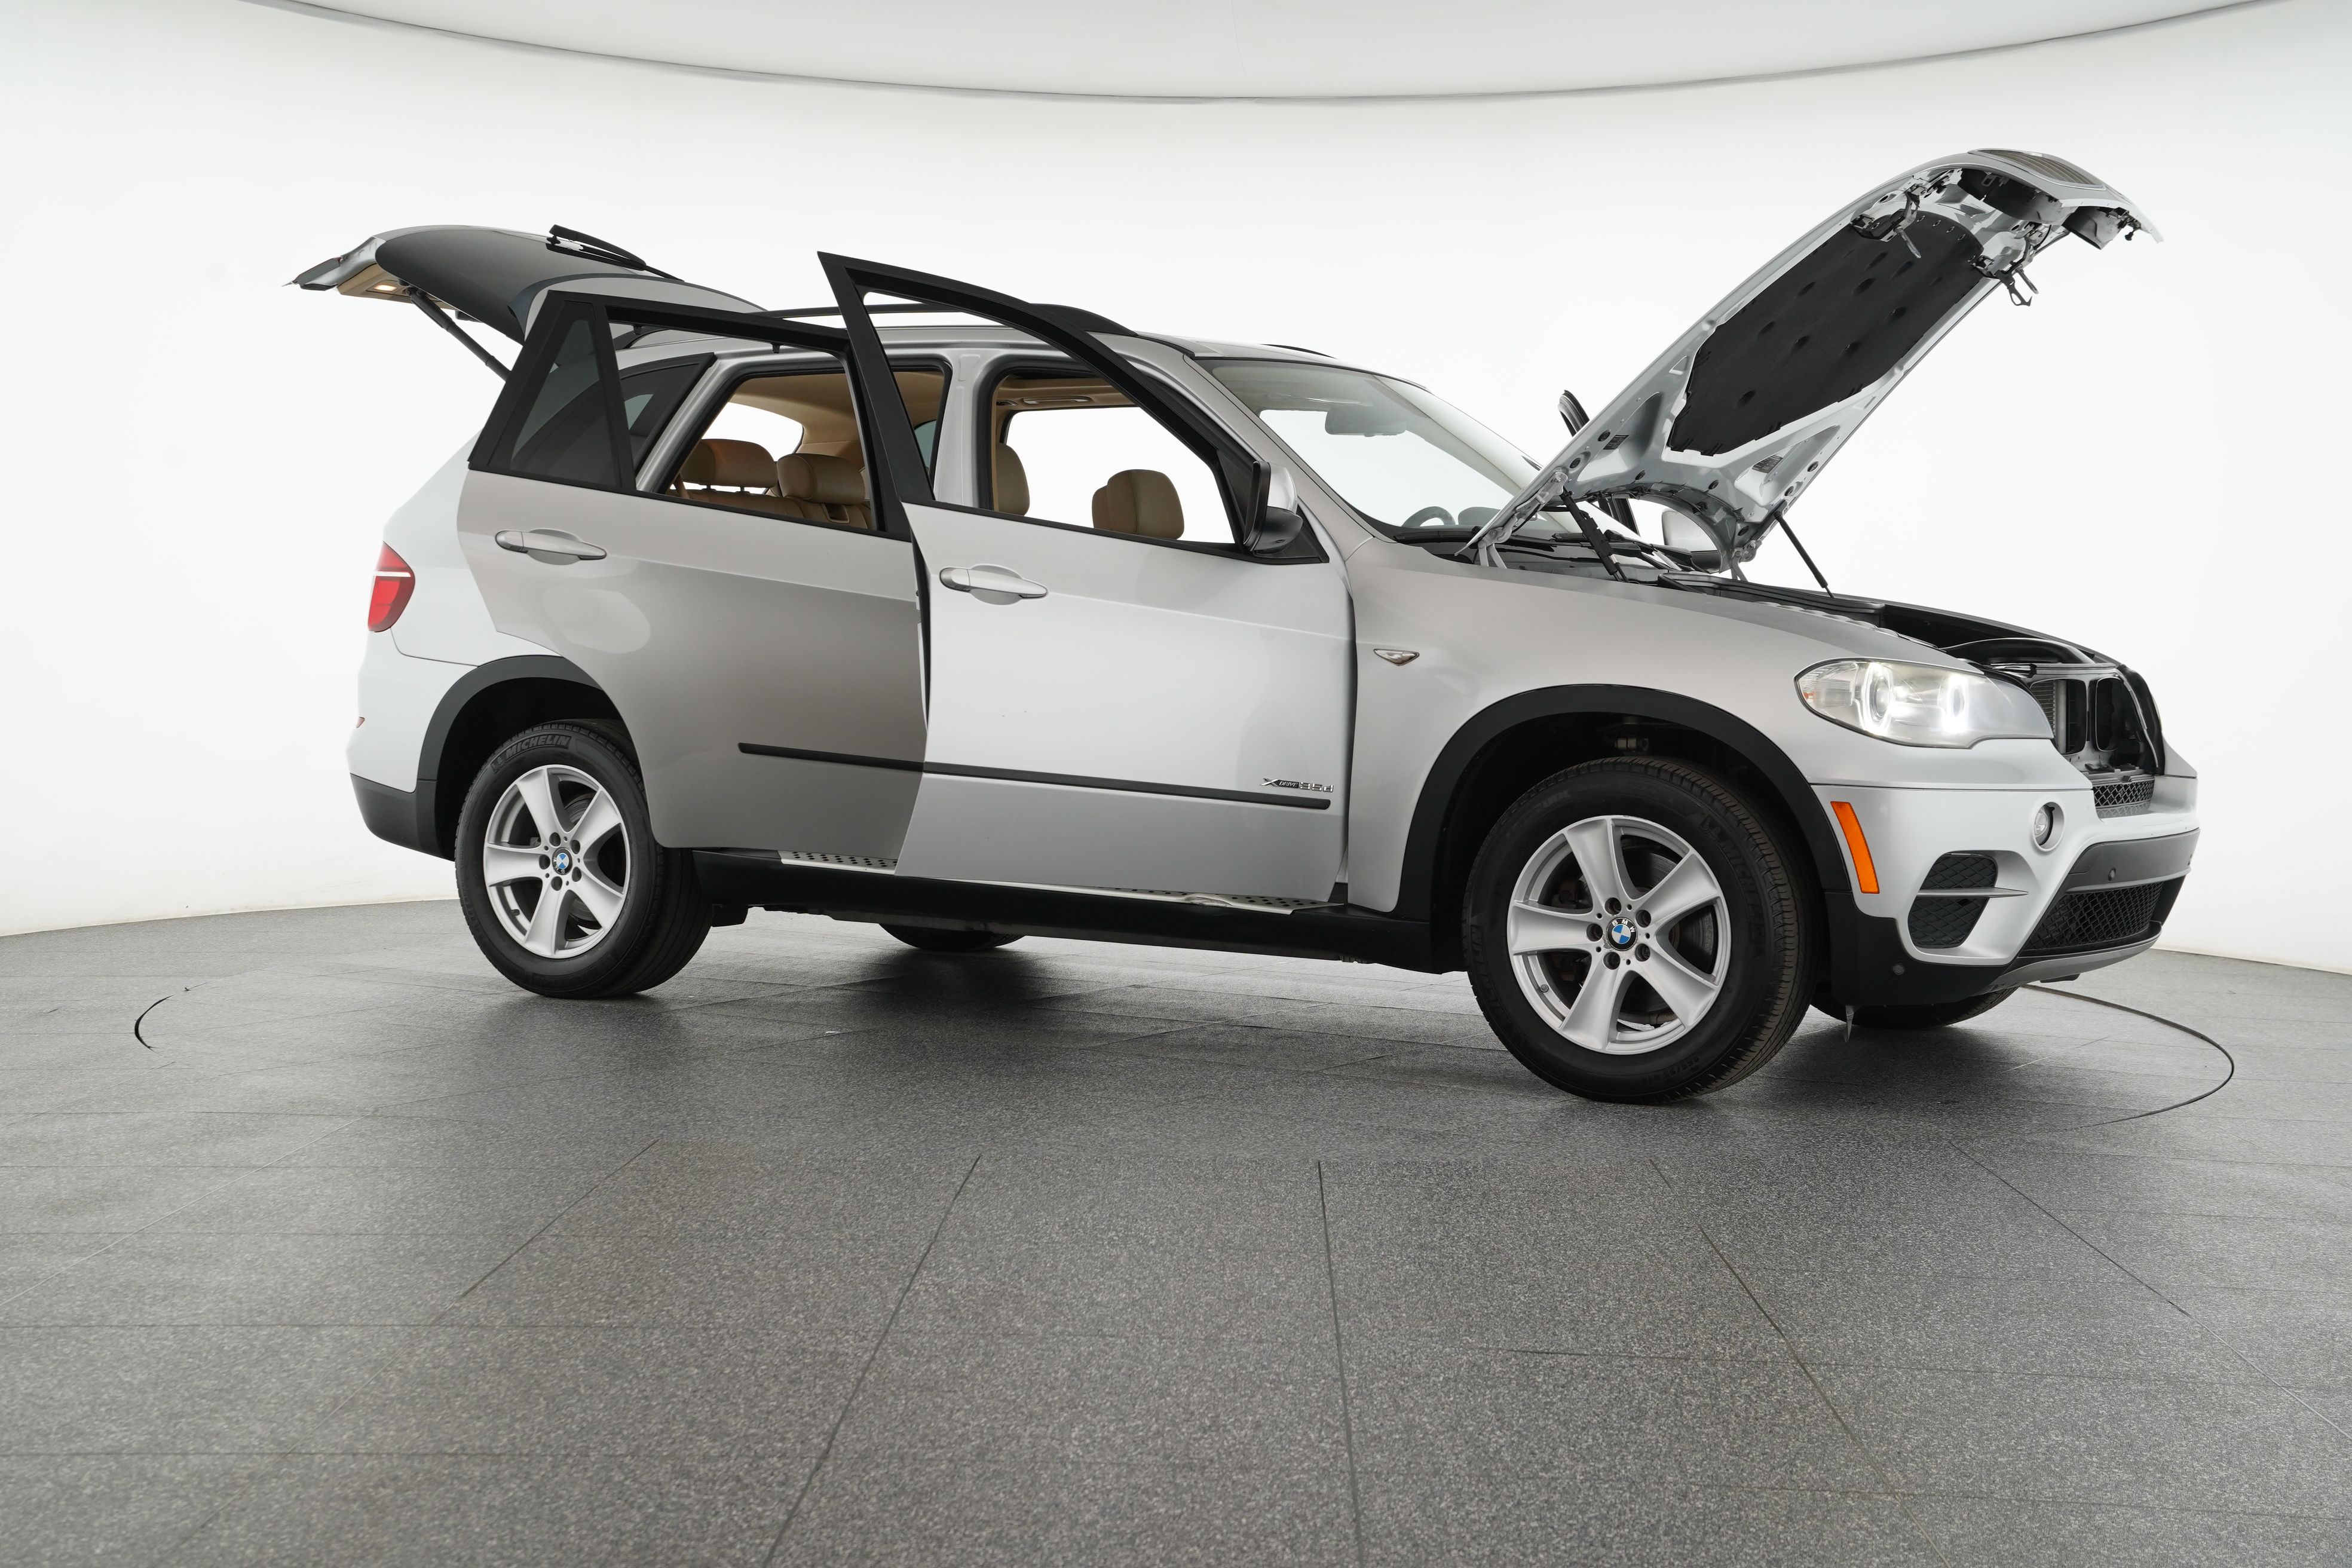 Pre-Owned 2012 BMW X5 xDrive35d AWD 4dr SUV